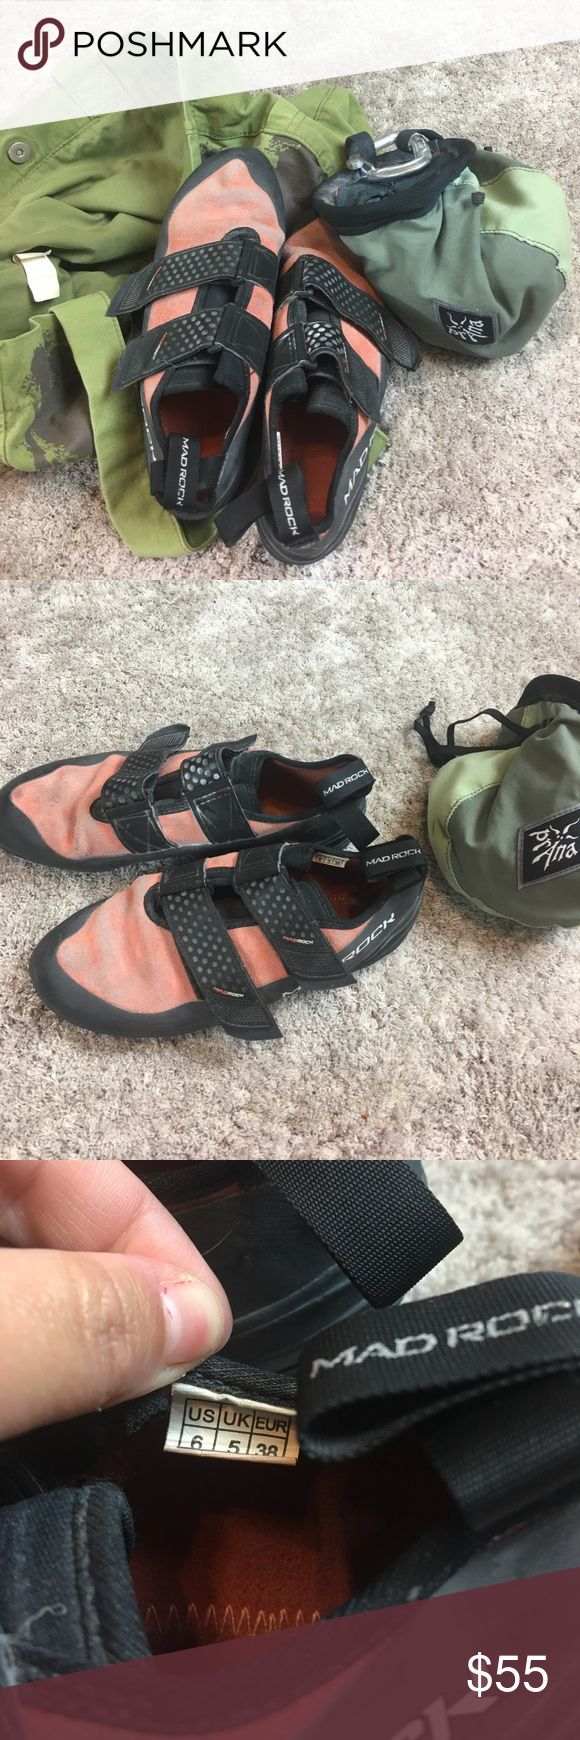 Mad Rock Climbing Shoes Prana Chalk Bag Bouldering Good condition, pre loved rock climbing shoes. Mad rock women's size 6. Orange and black. Prana chalk bag, with chalk included & carabiner clip. Have been stored in bike tote bag, so will include that. Prana Shoes Athletic Shoes